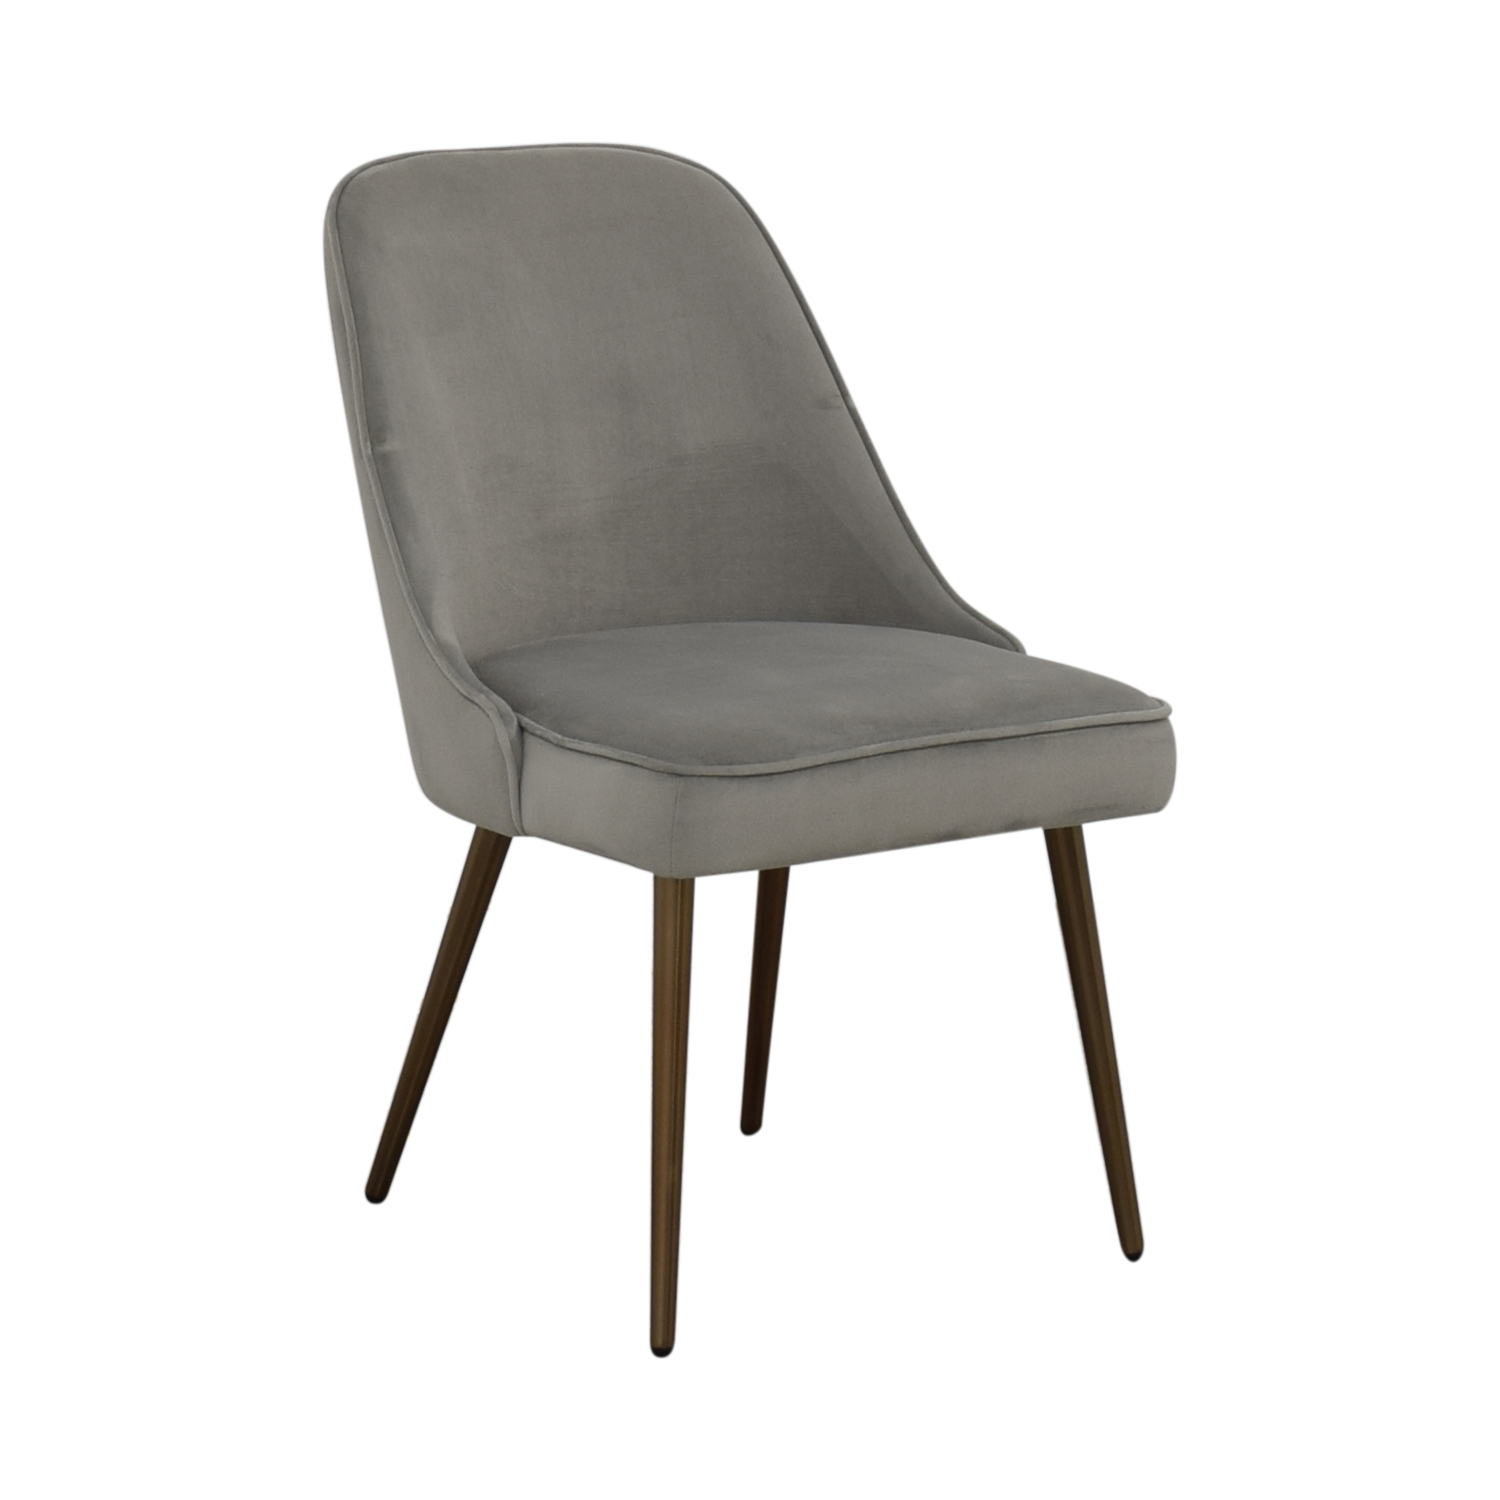 West Elm West Elm Mid-Century Dining Chair discount